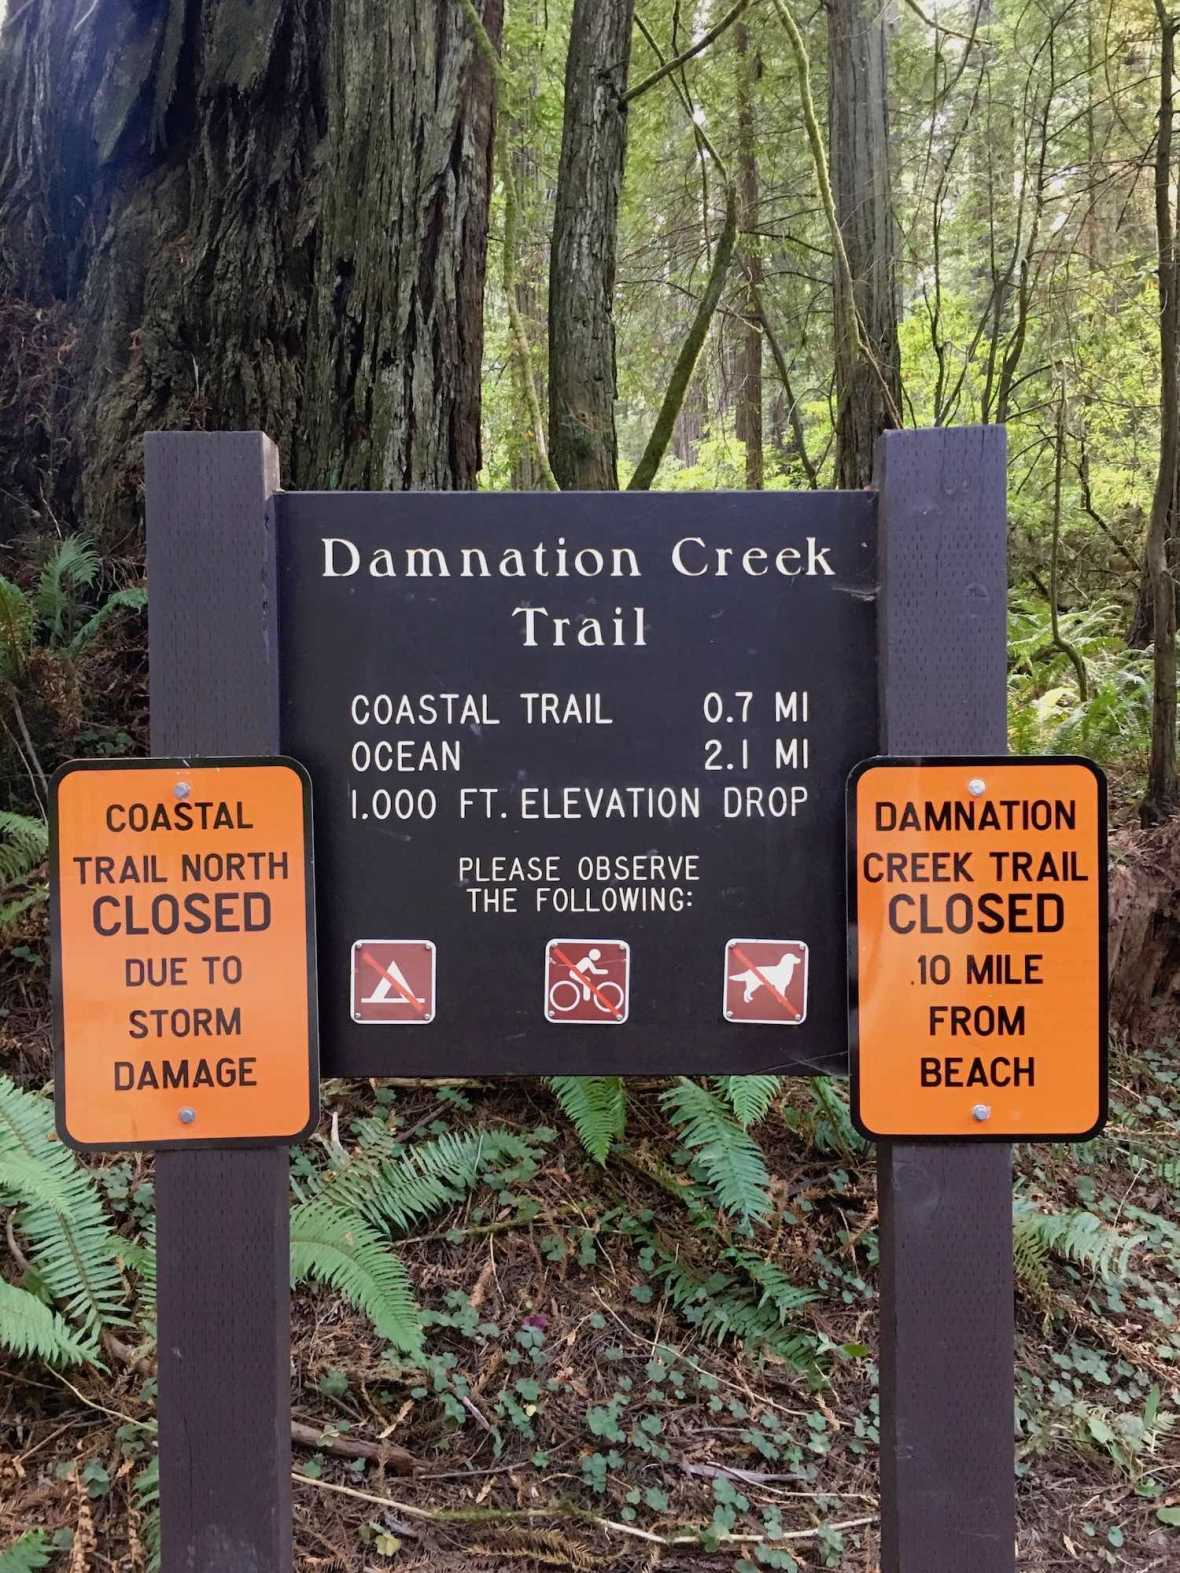 Damnation Creek Trailhead in Del Norte Coast Redwoods State Park